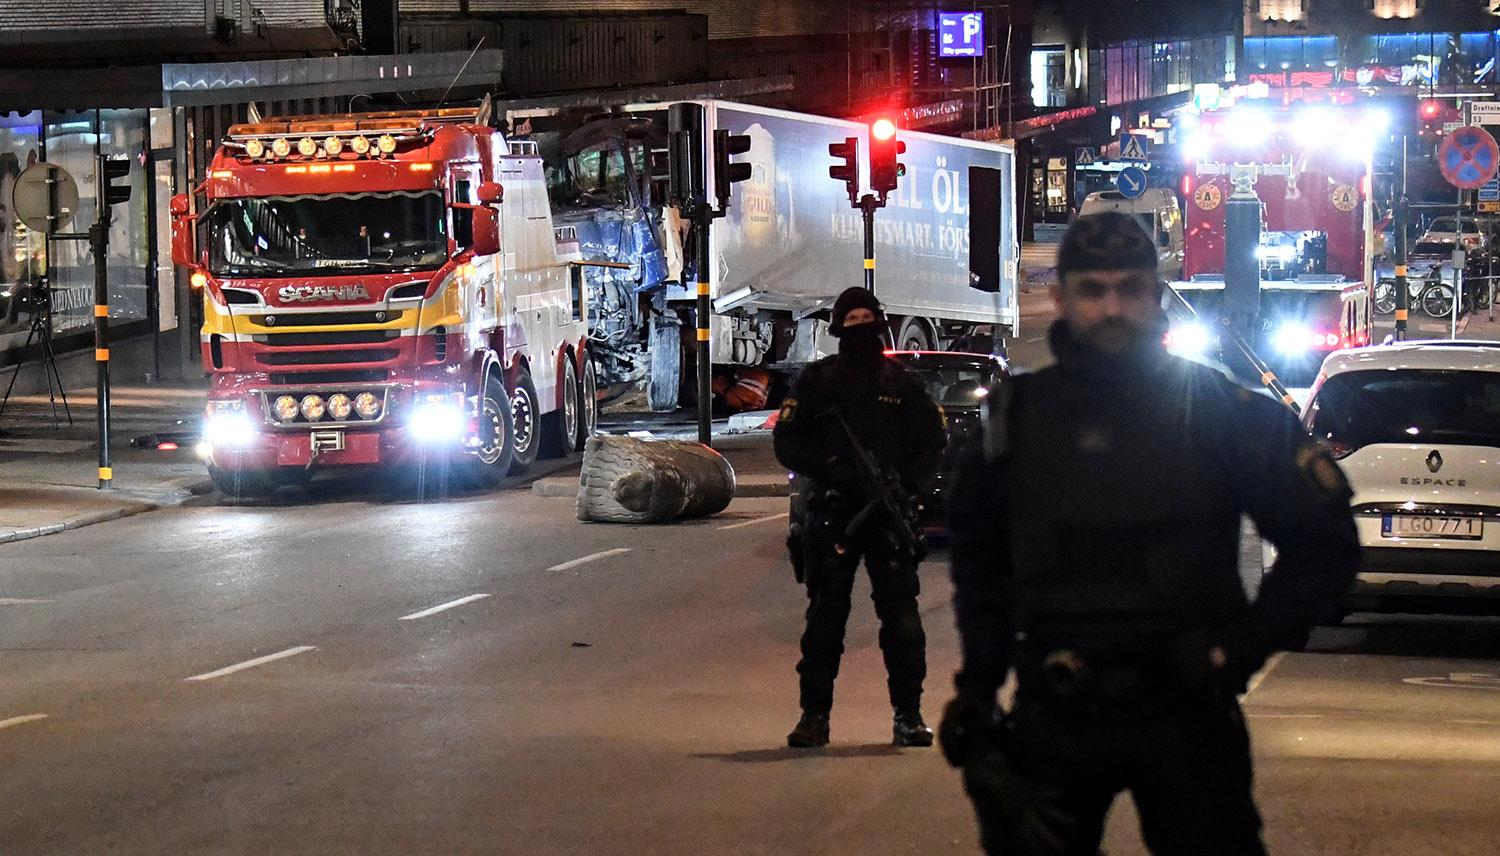 <p>Policemen stand guard as tow trucks pull away the beer truck that crashed into the department store Ahlens after plowing down the Drottninggatan Street in central Stockholm, Sweden, April 8, 2017. (Photo: Maja Suslin/TT News Agency/Reuters) </p>